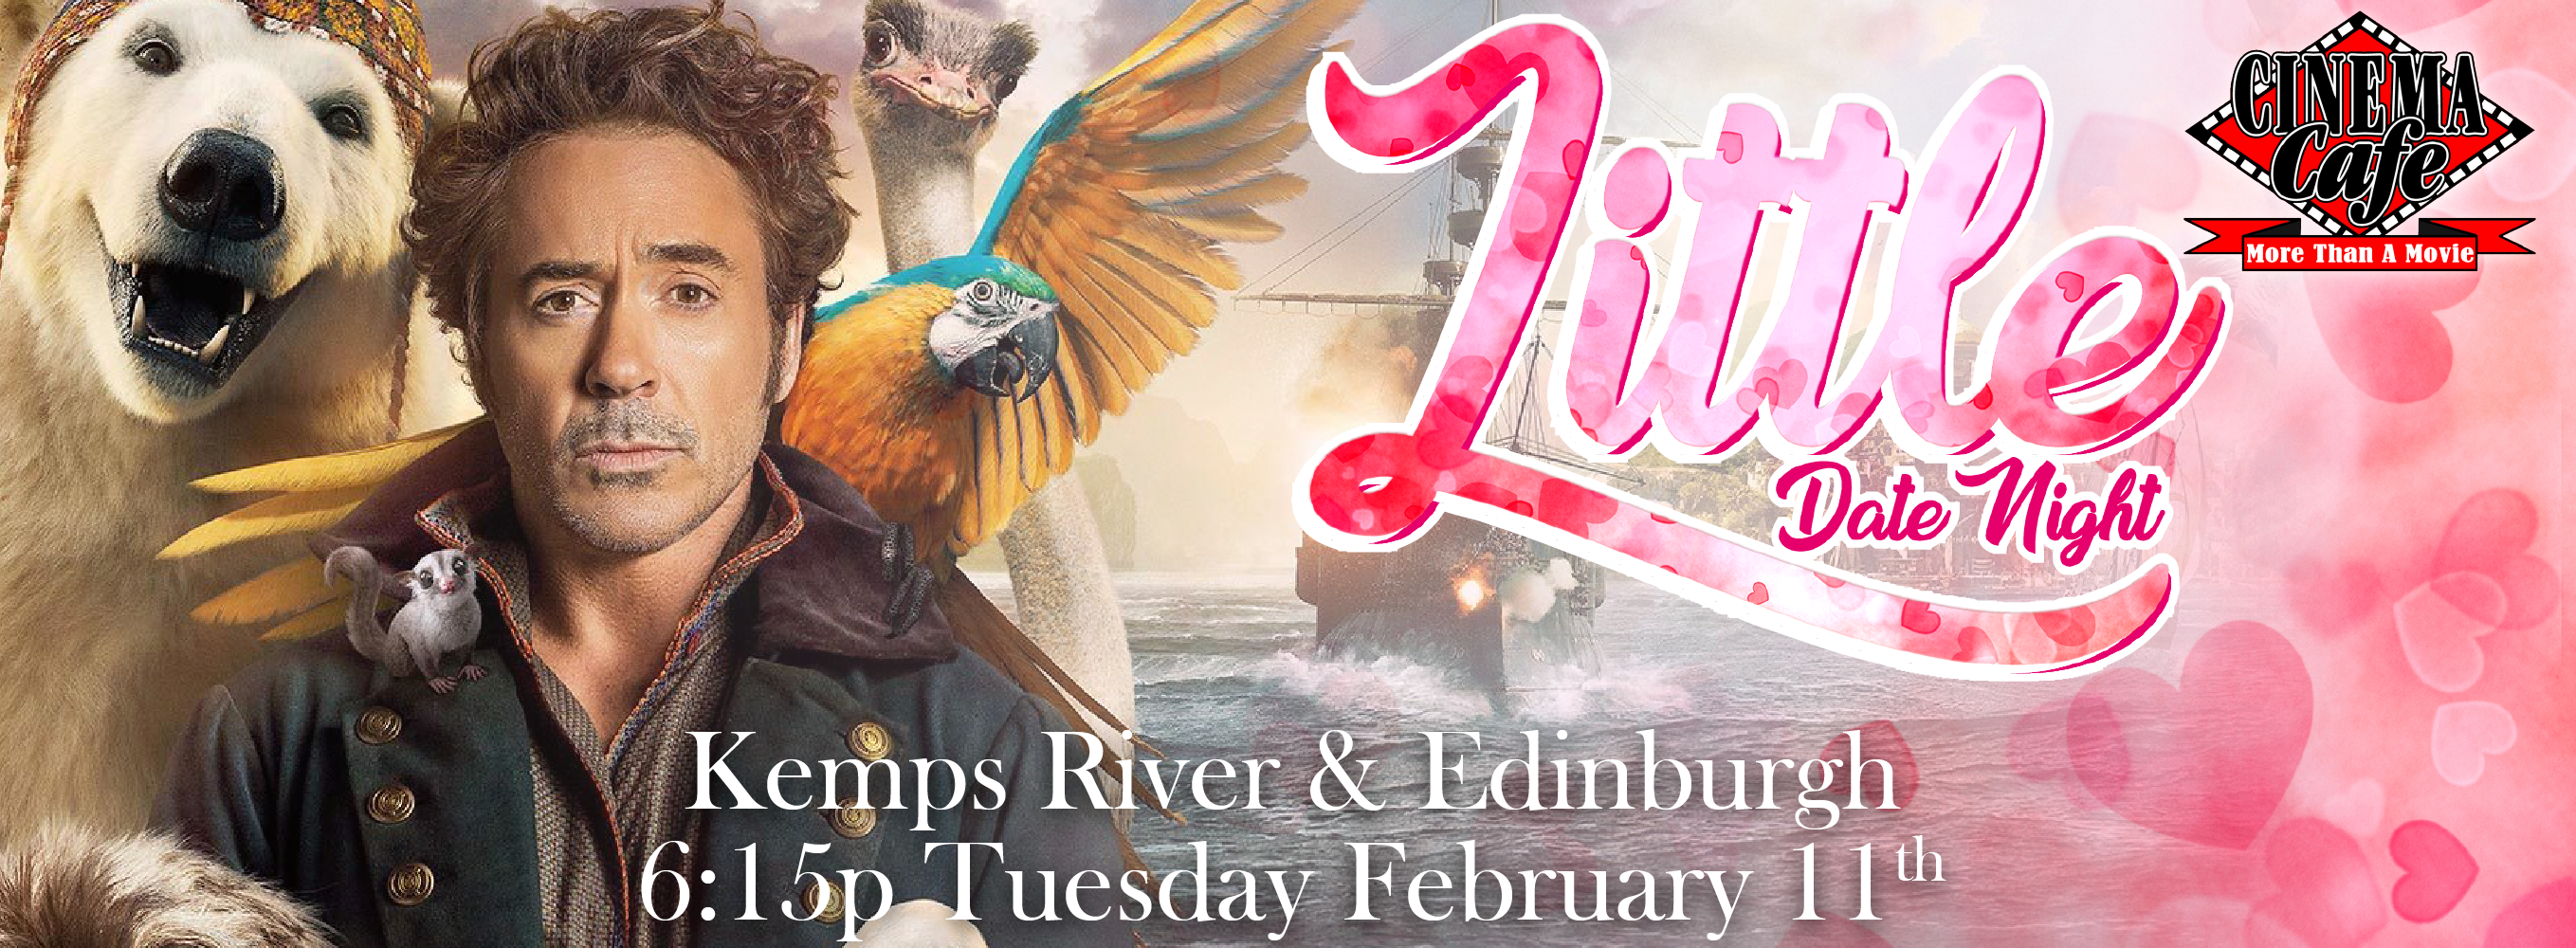 Little Date Night Dolittle Tuesday Feb. 11th @ 6:15pm at Kemps River and Edinburgh.